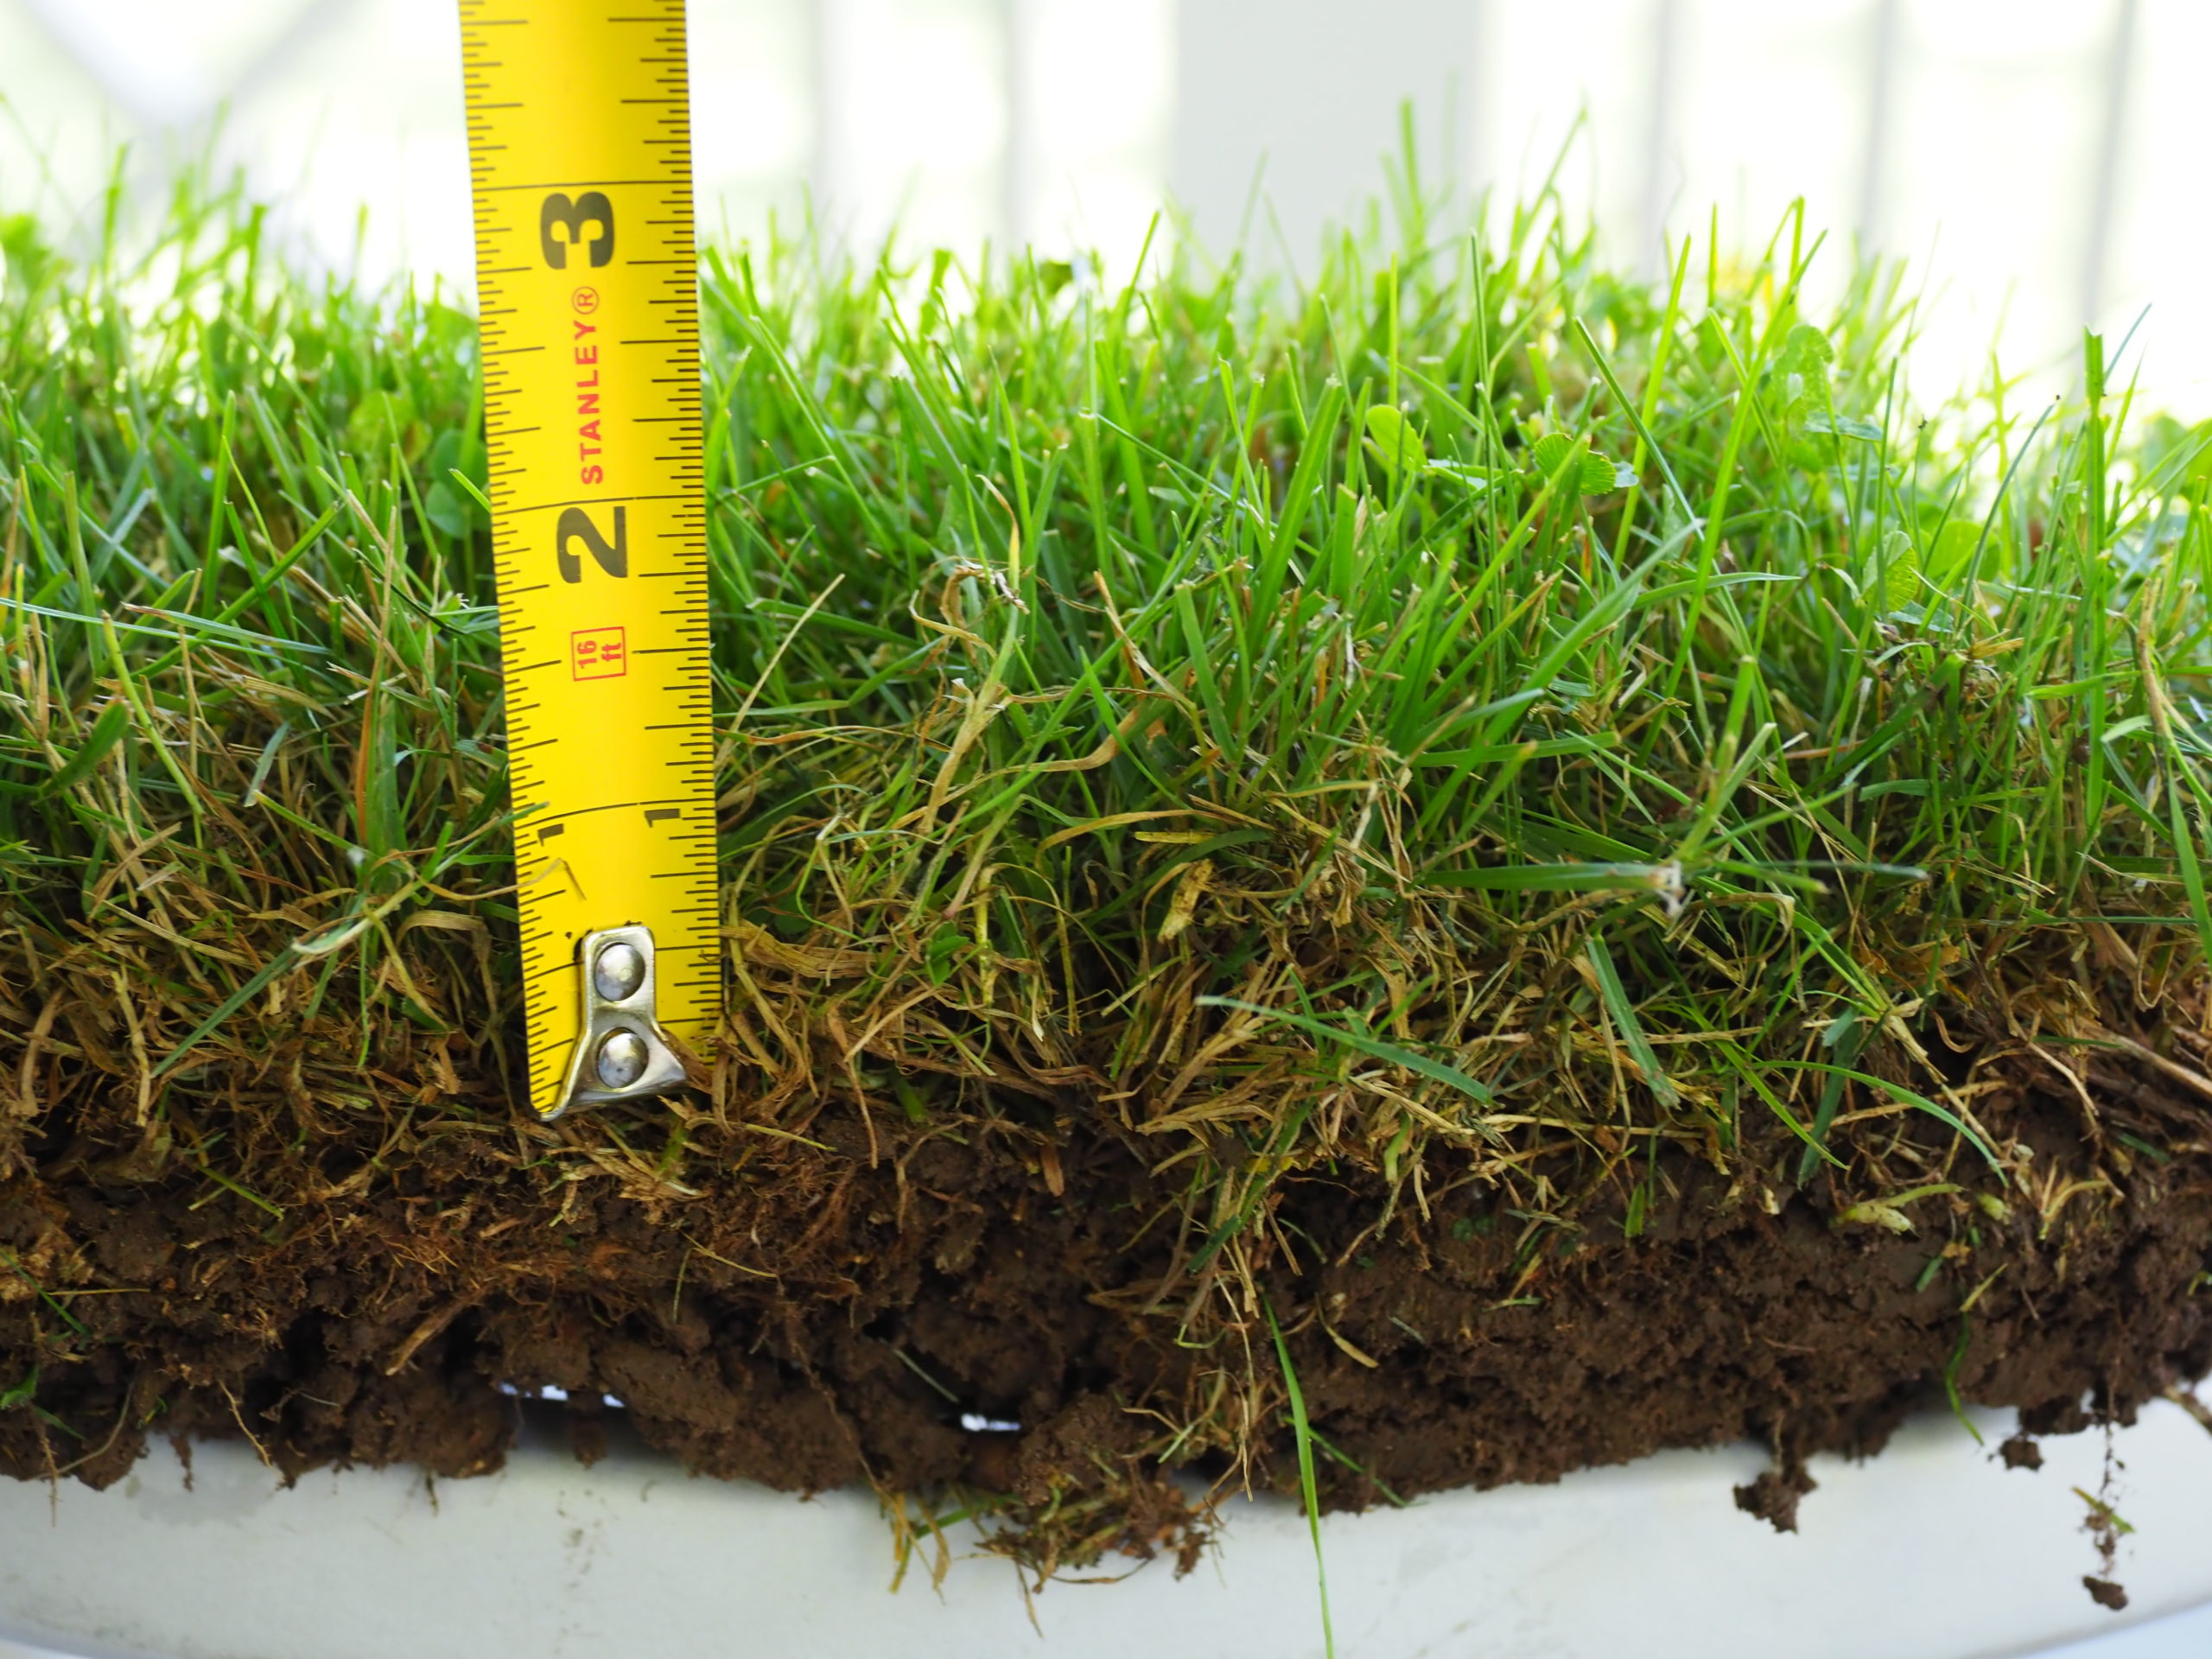 This is the sod profile of the same lawn, weeds included. Cut to about 3 inches, there is a very thin thatch layer of about a half inch (bottom brown). Not bad for 18 years of minimal maintenance. Herbicides and lots more fertilizer would show a very different picture. How thick is your thatch layer? ANDREW MESSINGER